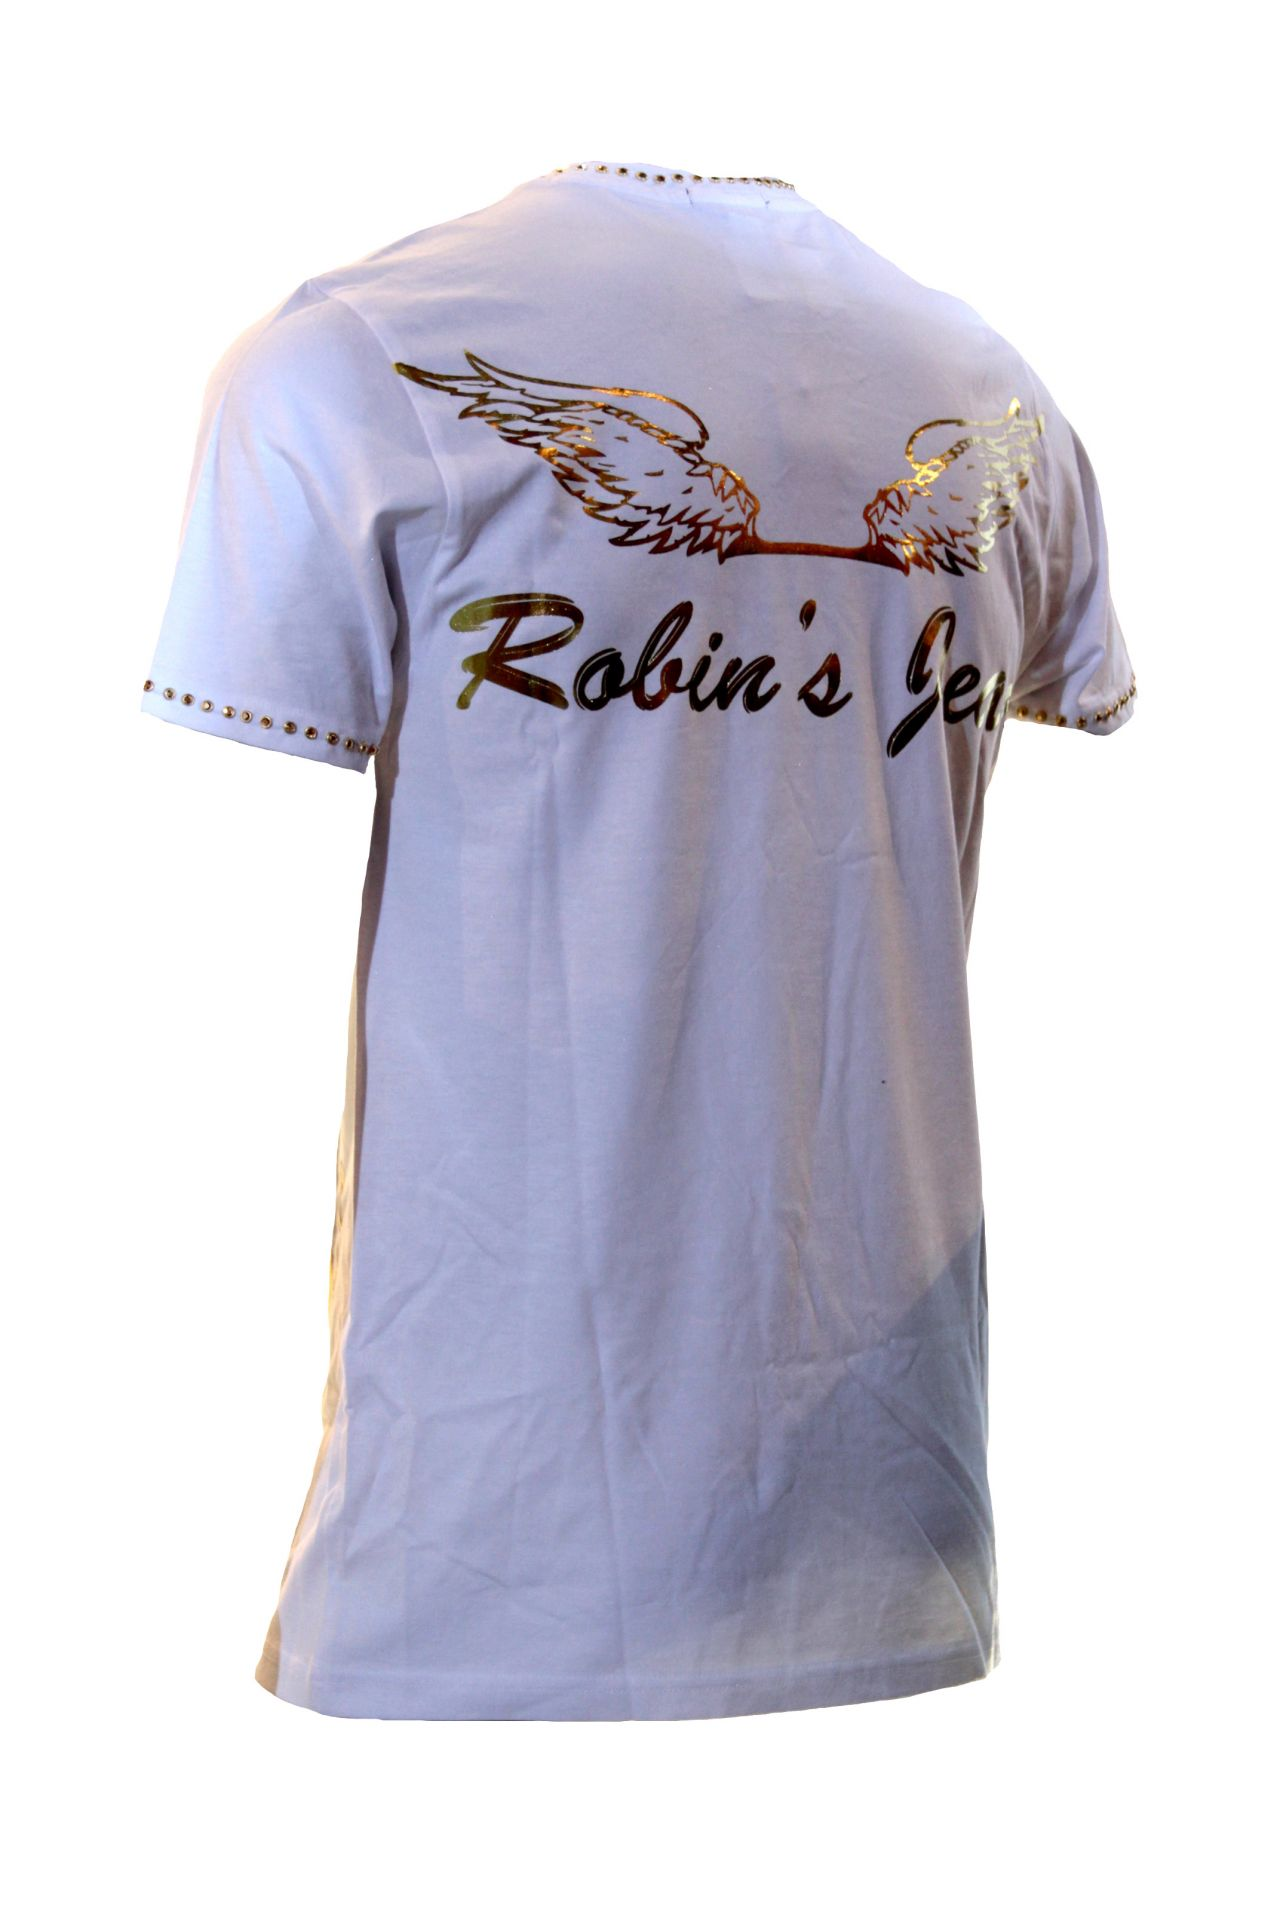 CREW TEE IN WHITE WITH GOLD PRINT & STUDS